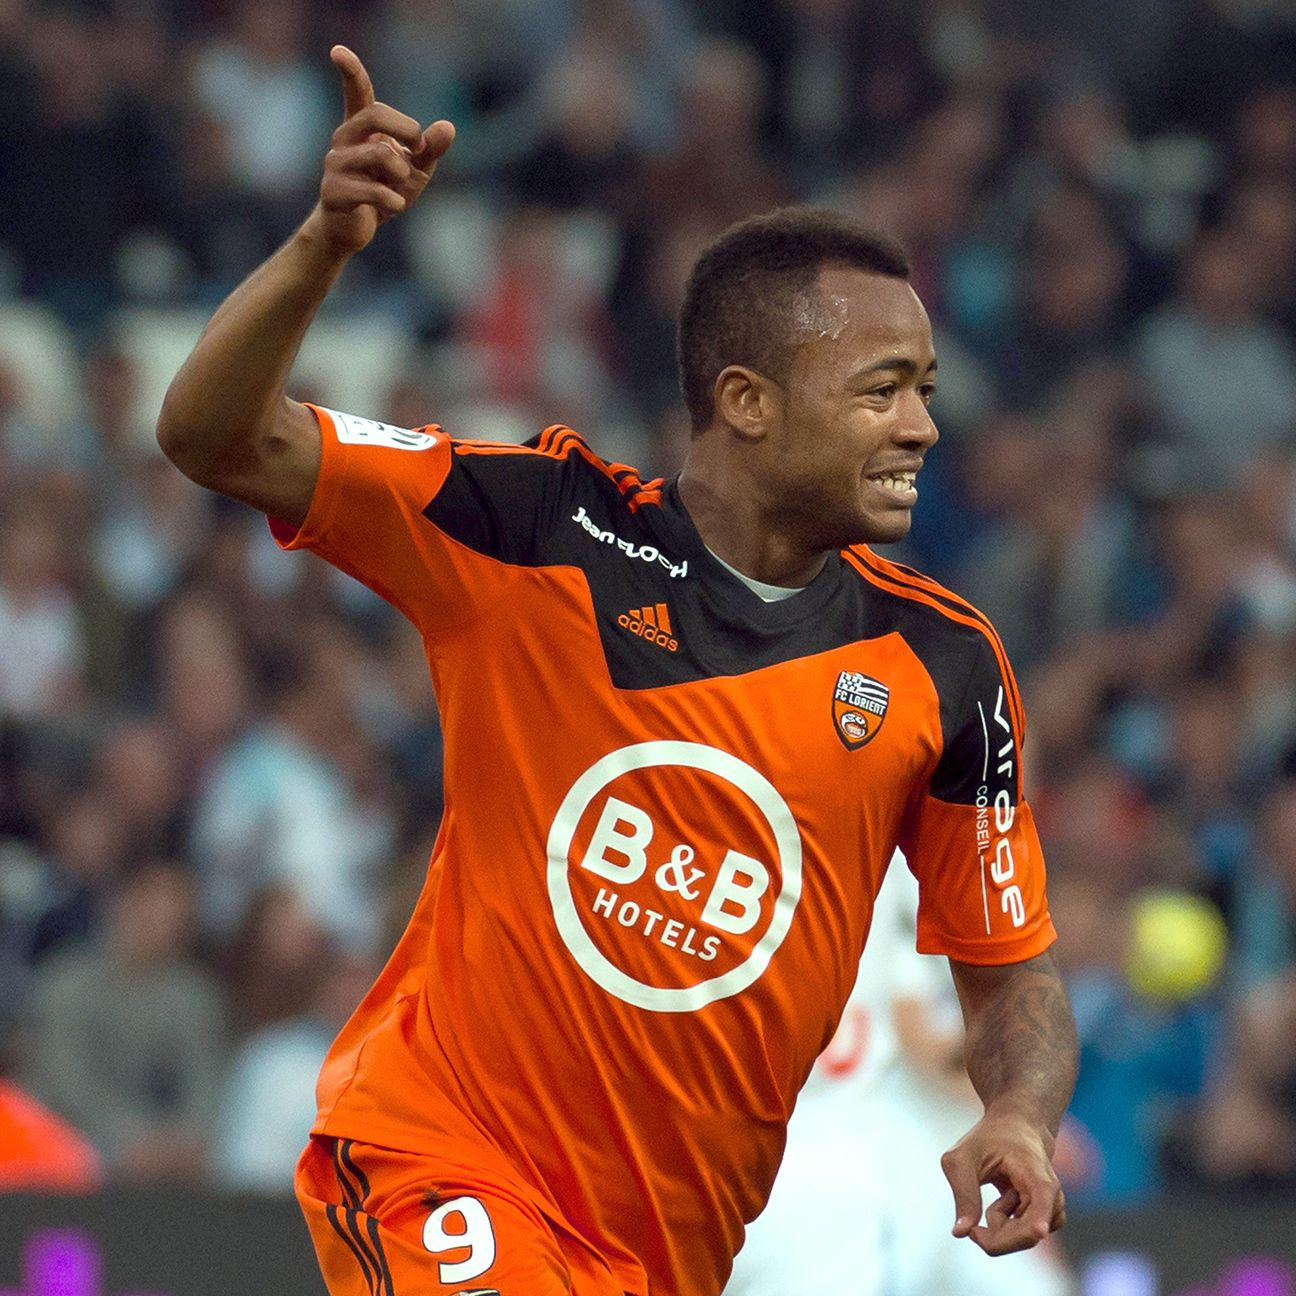 Jordan Ayew had 12 goals in 29 Ligue 1 starts for Lorient in 2014-15.